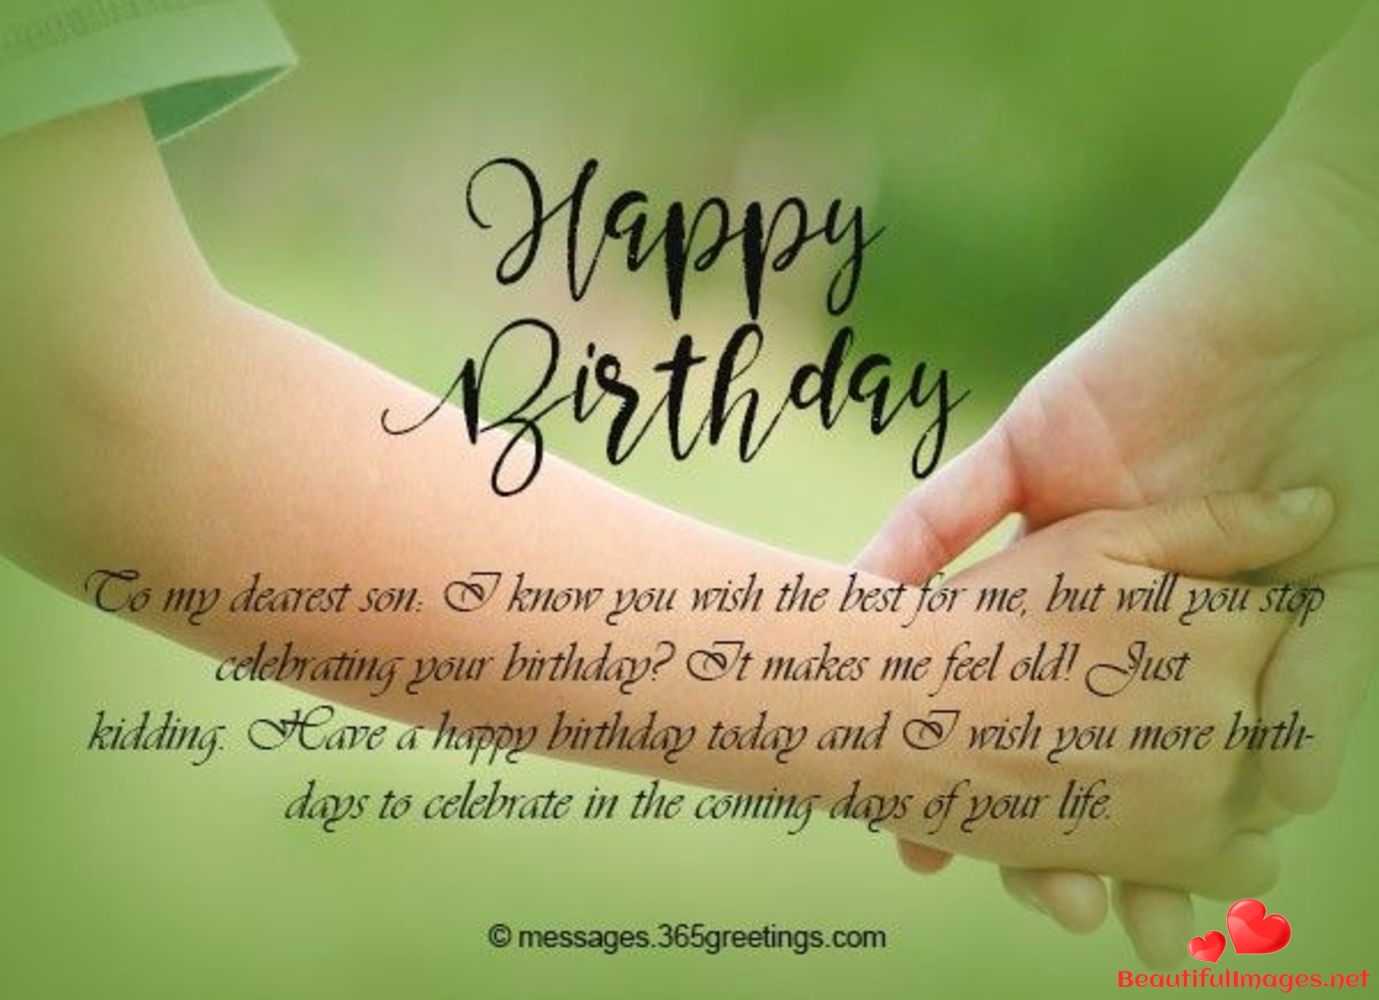 Happy-Birthday-Free-Images-Whatsapp-911